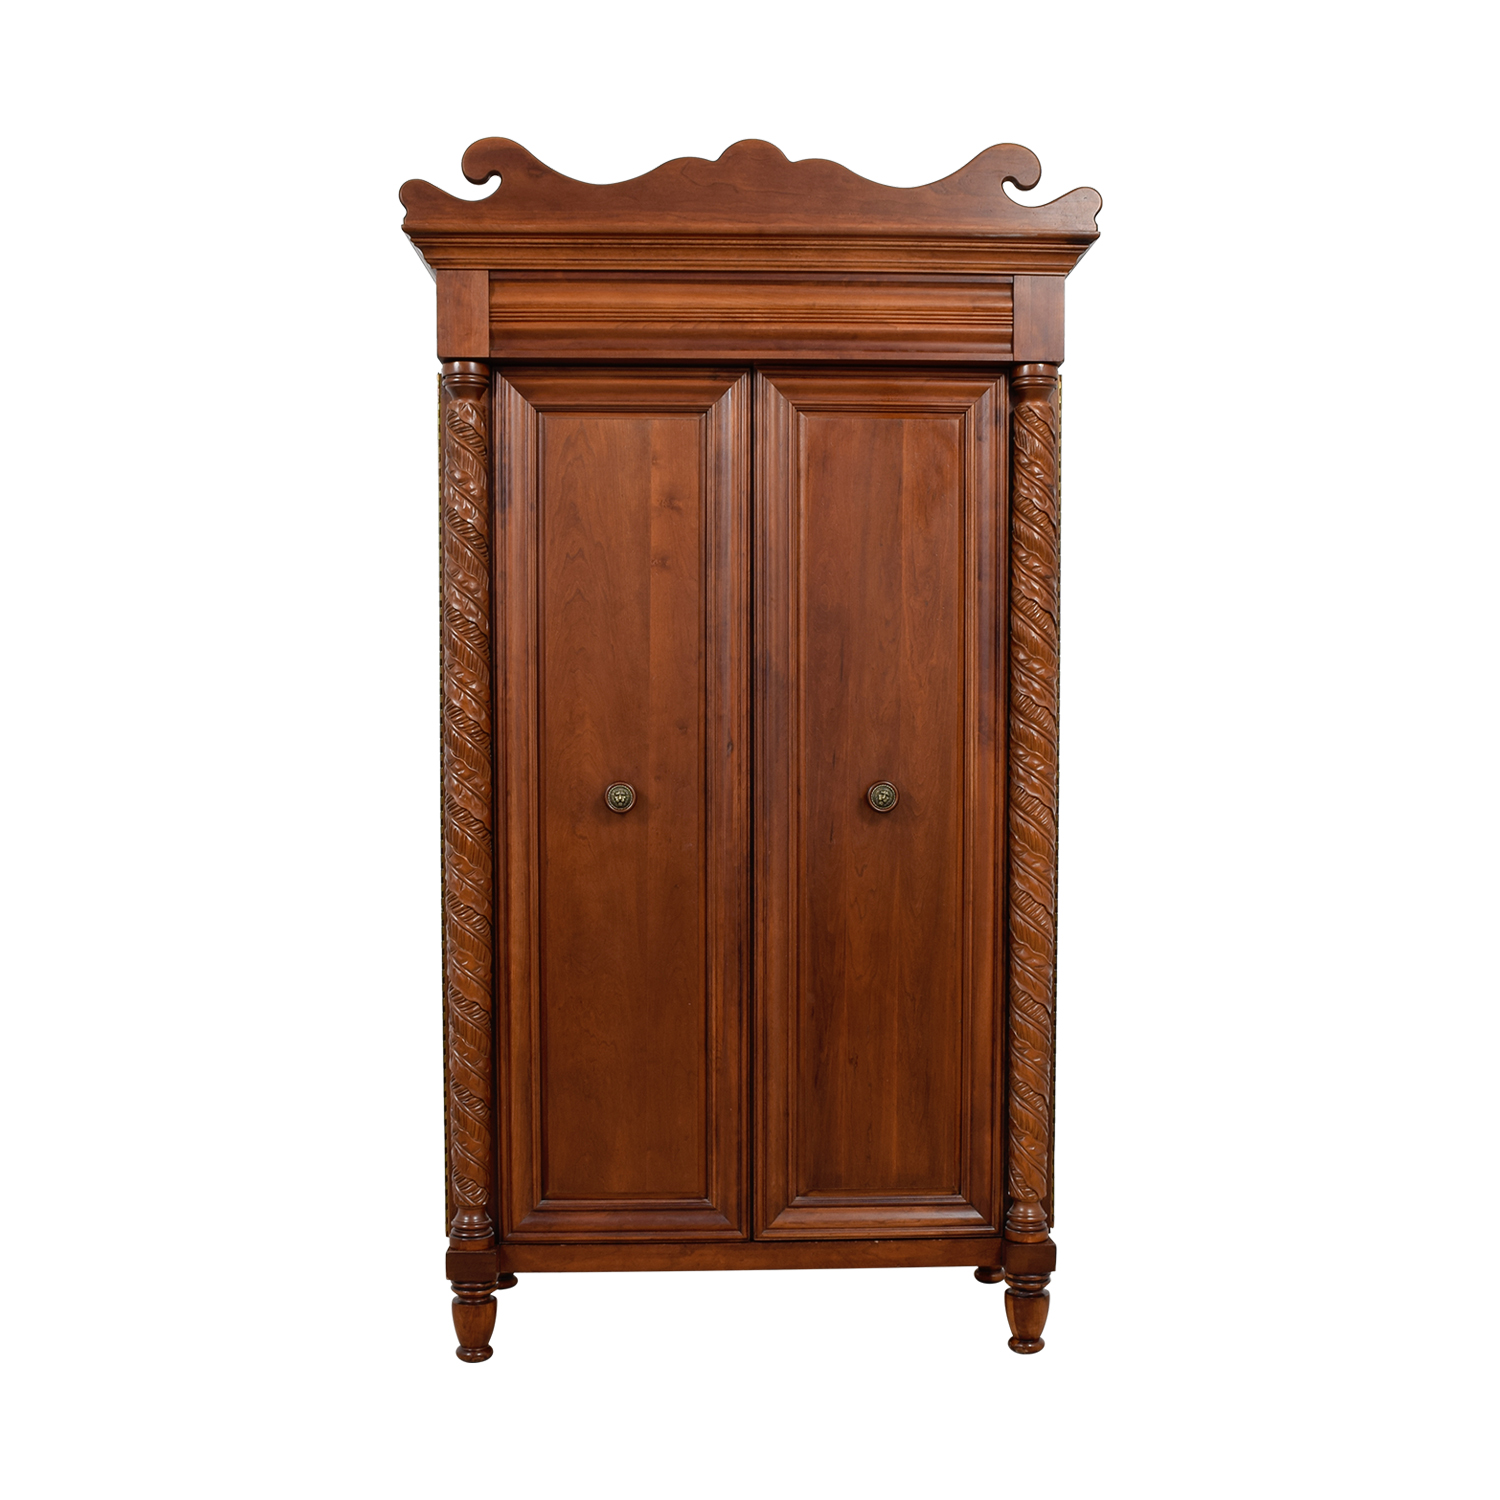 Pulaski Pulaski Croquet Wood Armoire with Wicker Baskets coupon